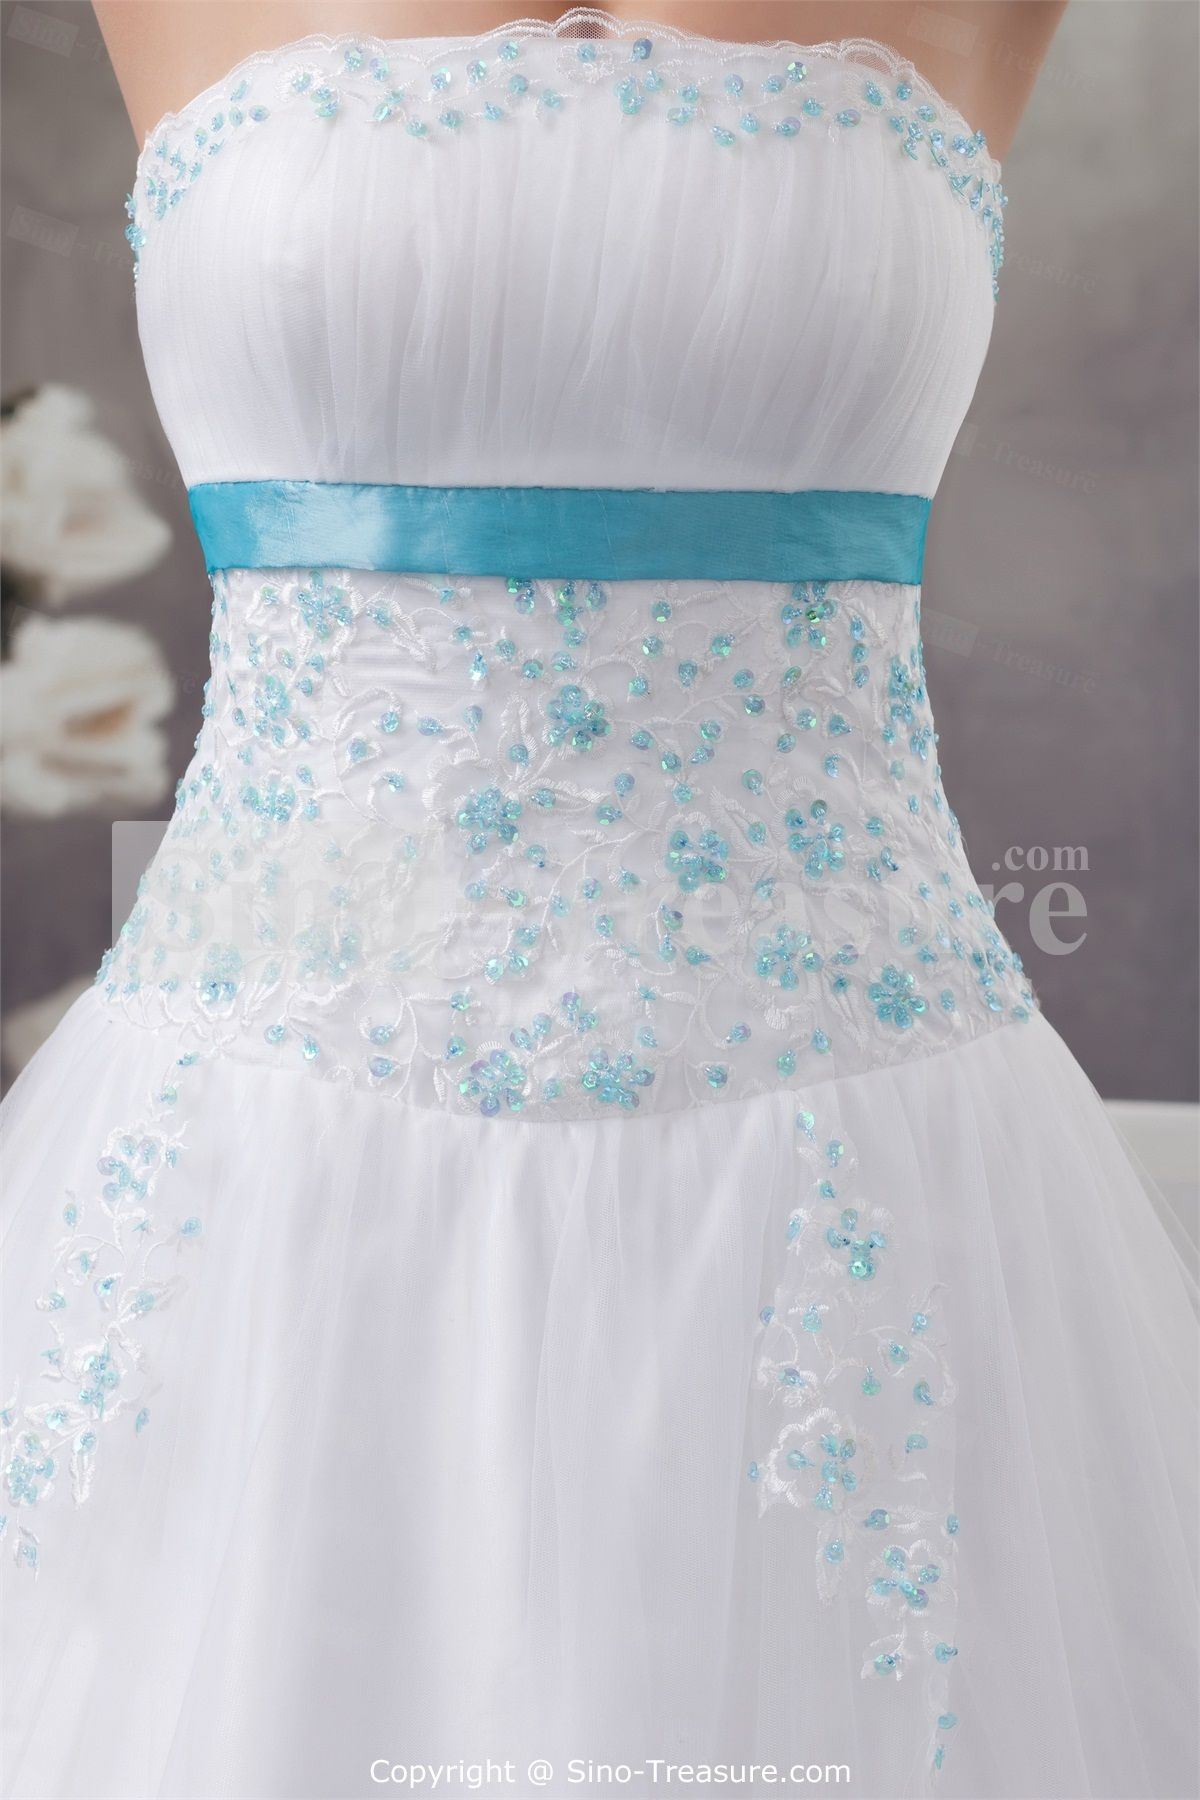 teal dresses for wedding bling wedding gown Wedding Dresses Ball Gown With Bling Strapless